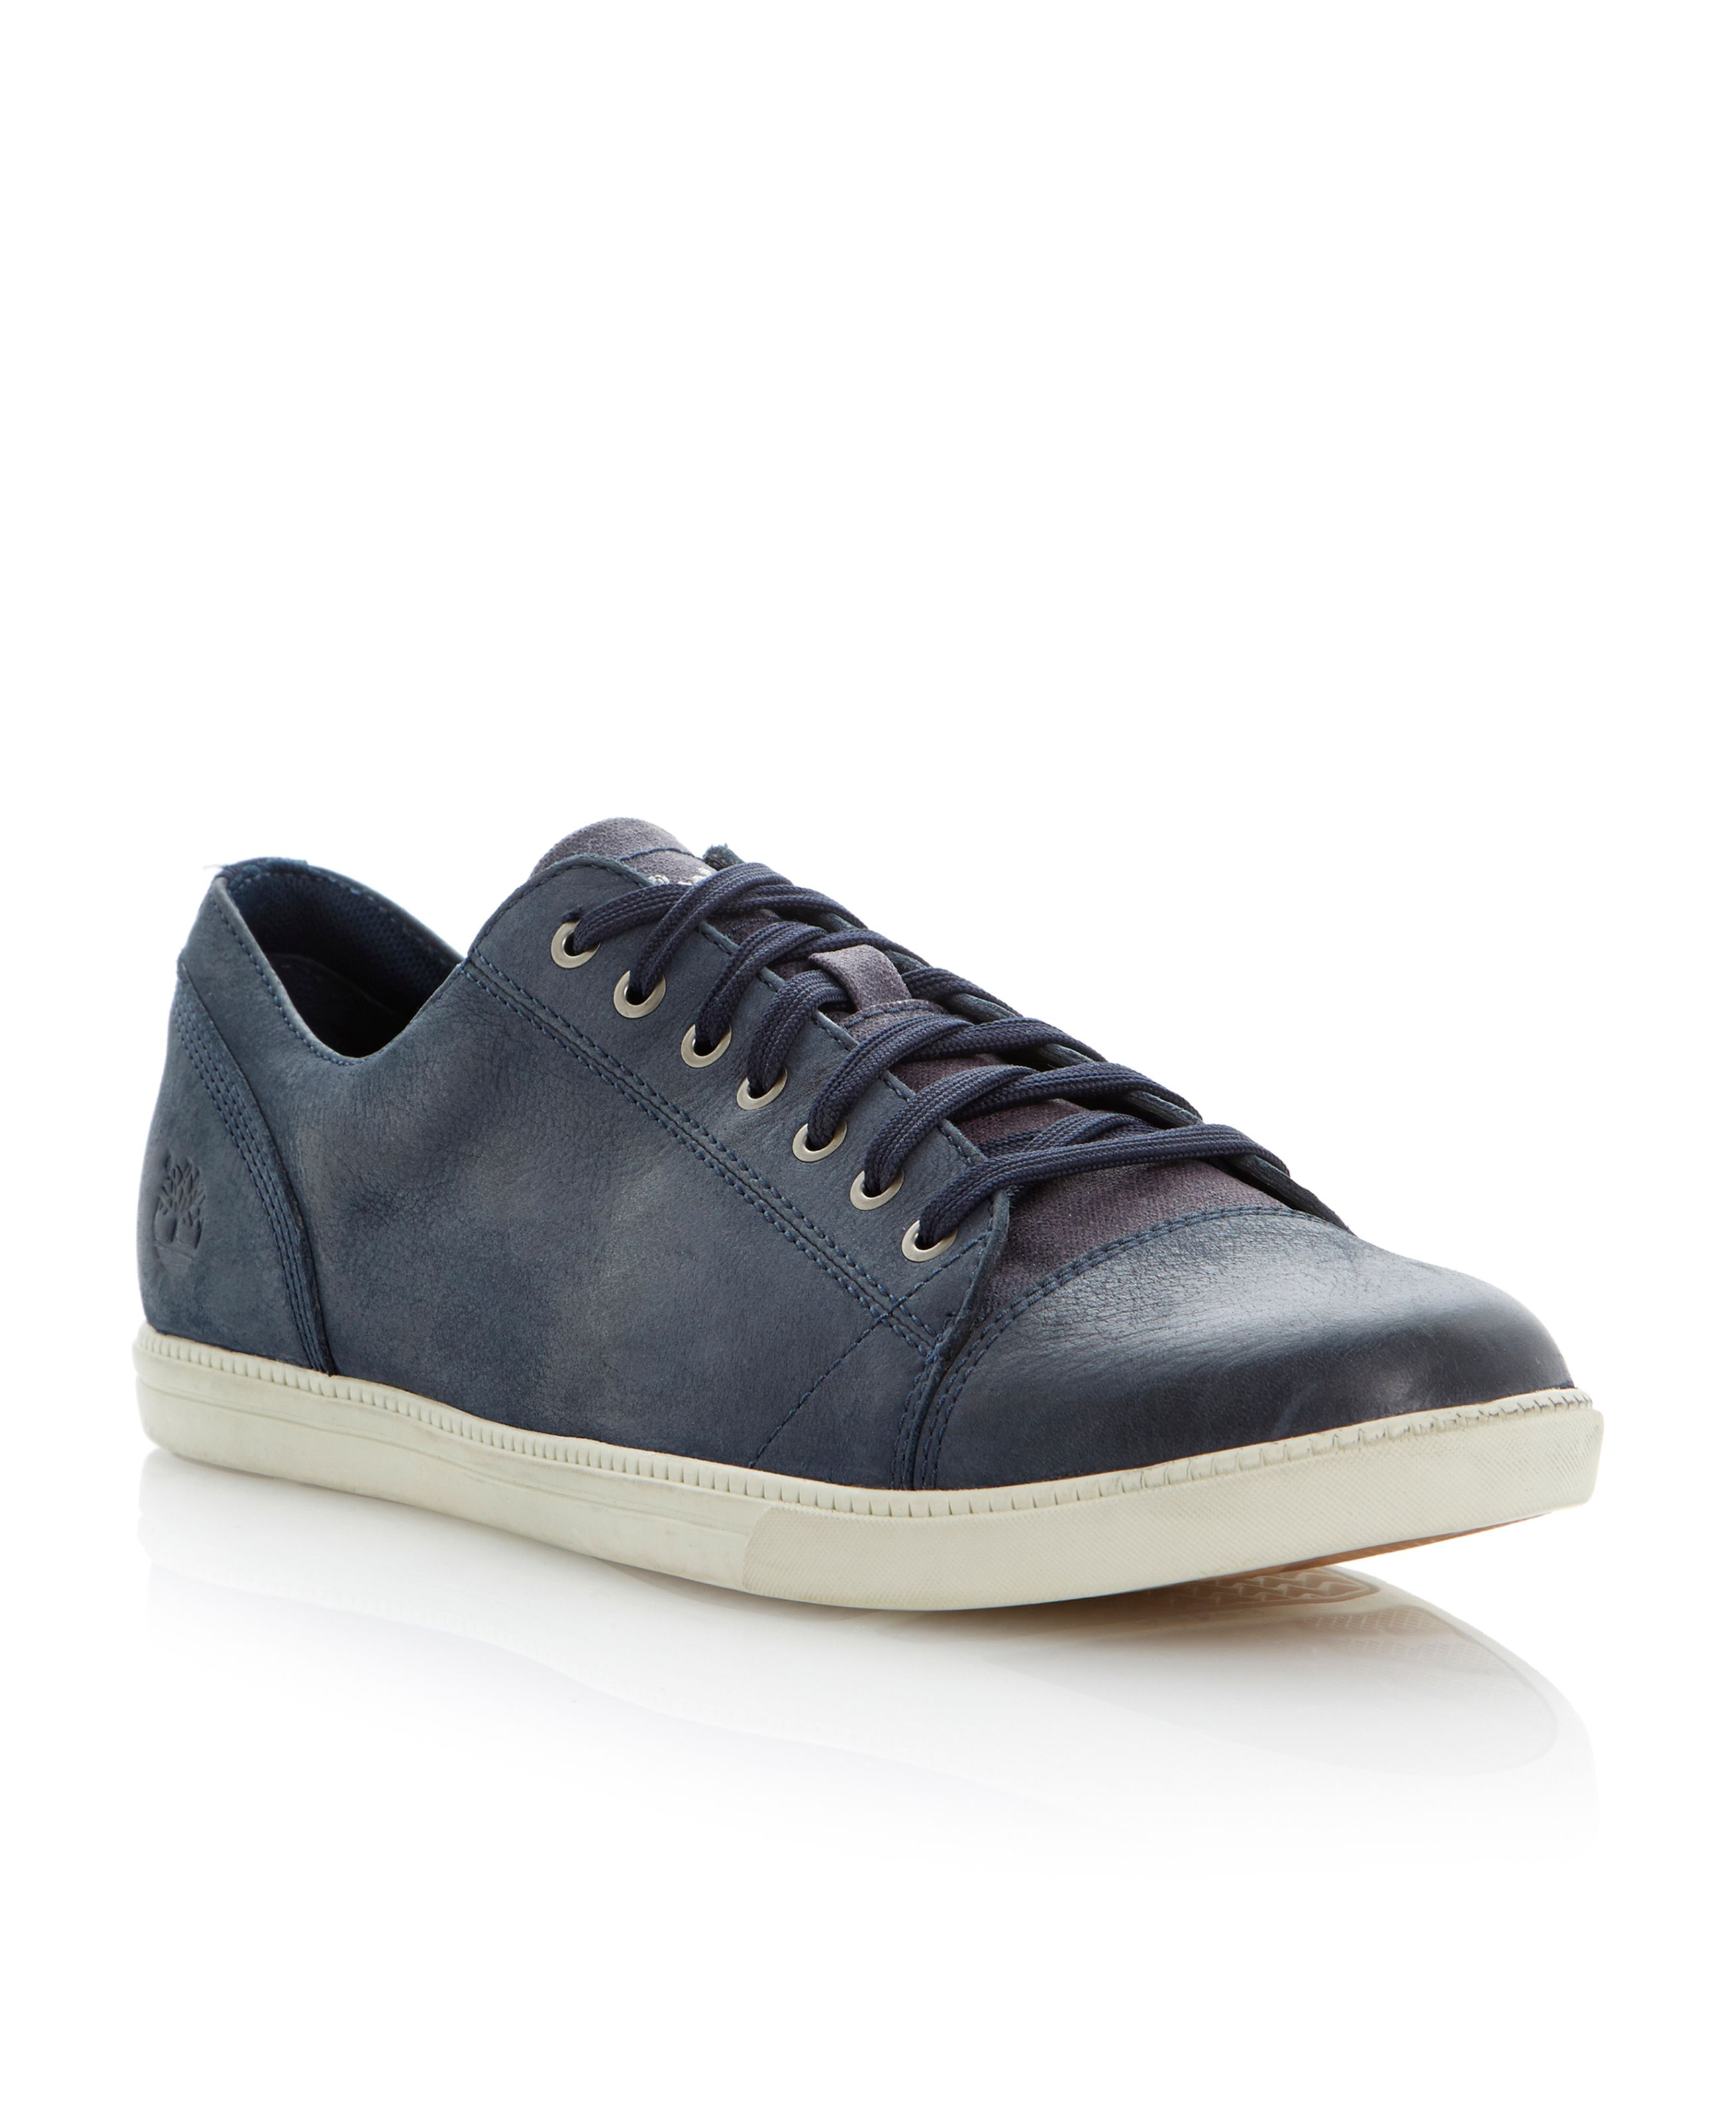 6448a lace up toecap sneakers